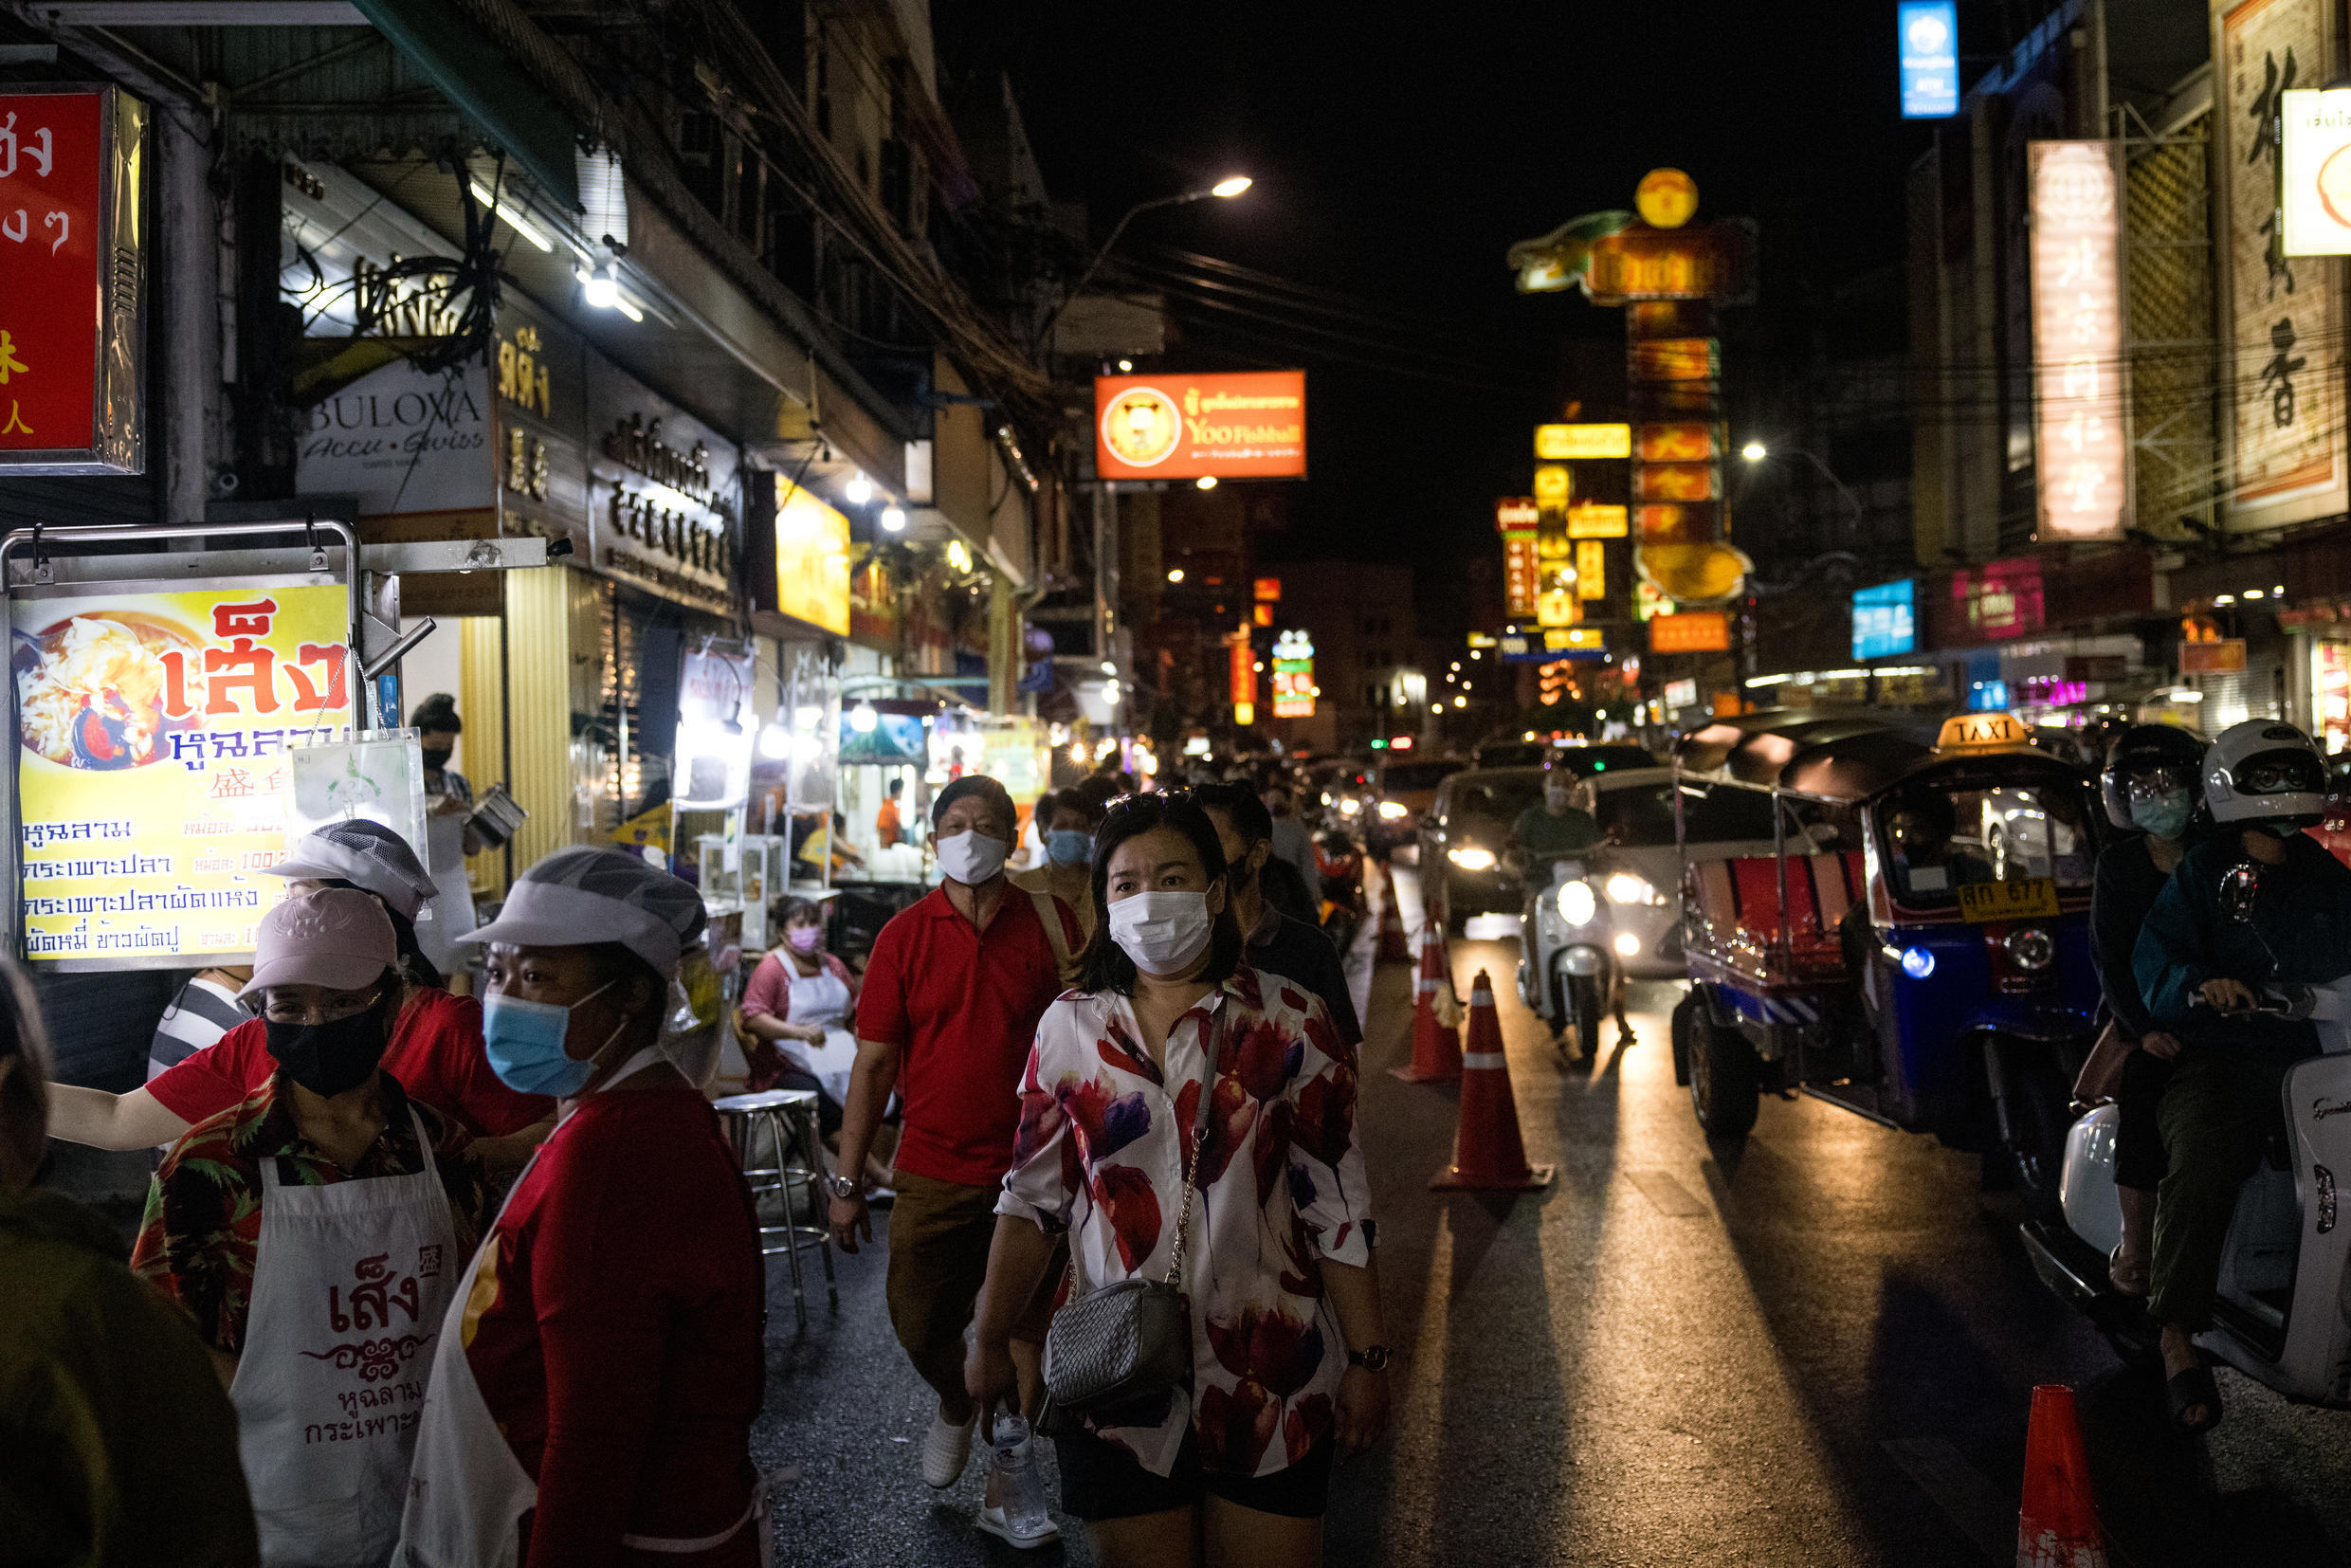 A ban on bars, nightclubs and restaurant alcohol sales went into effect in Bangkok